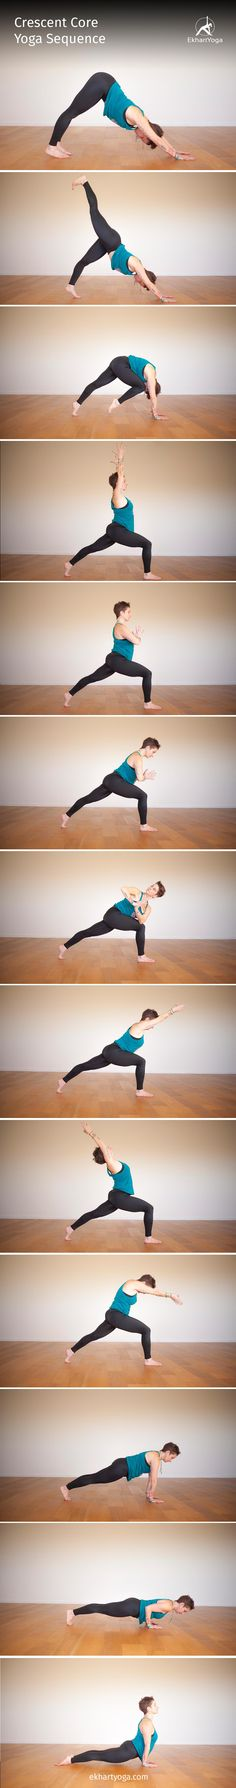 A Crescent Core Yoga Sequence to get your heart rate going and your body grounded. Yoga Flow, Yoga Meditation, Yin Yoga, Namaste, Restorative Yoga Poses, Yoga For Back Pain, Basic Yoga, Iyengar Yoga, Yoga Tips